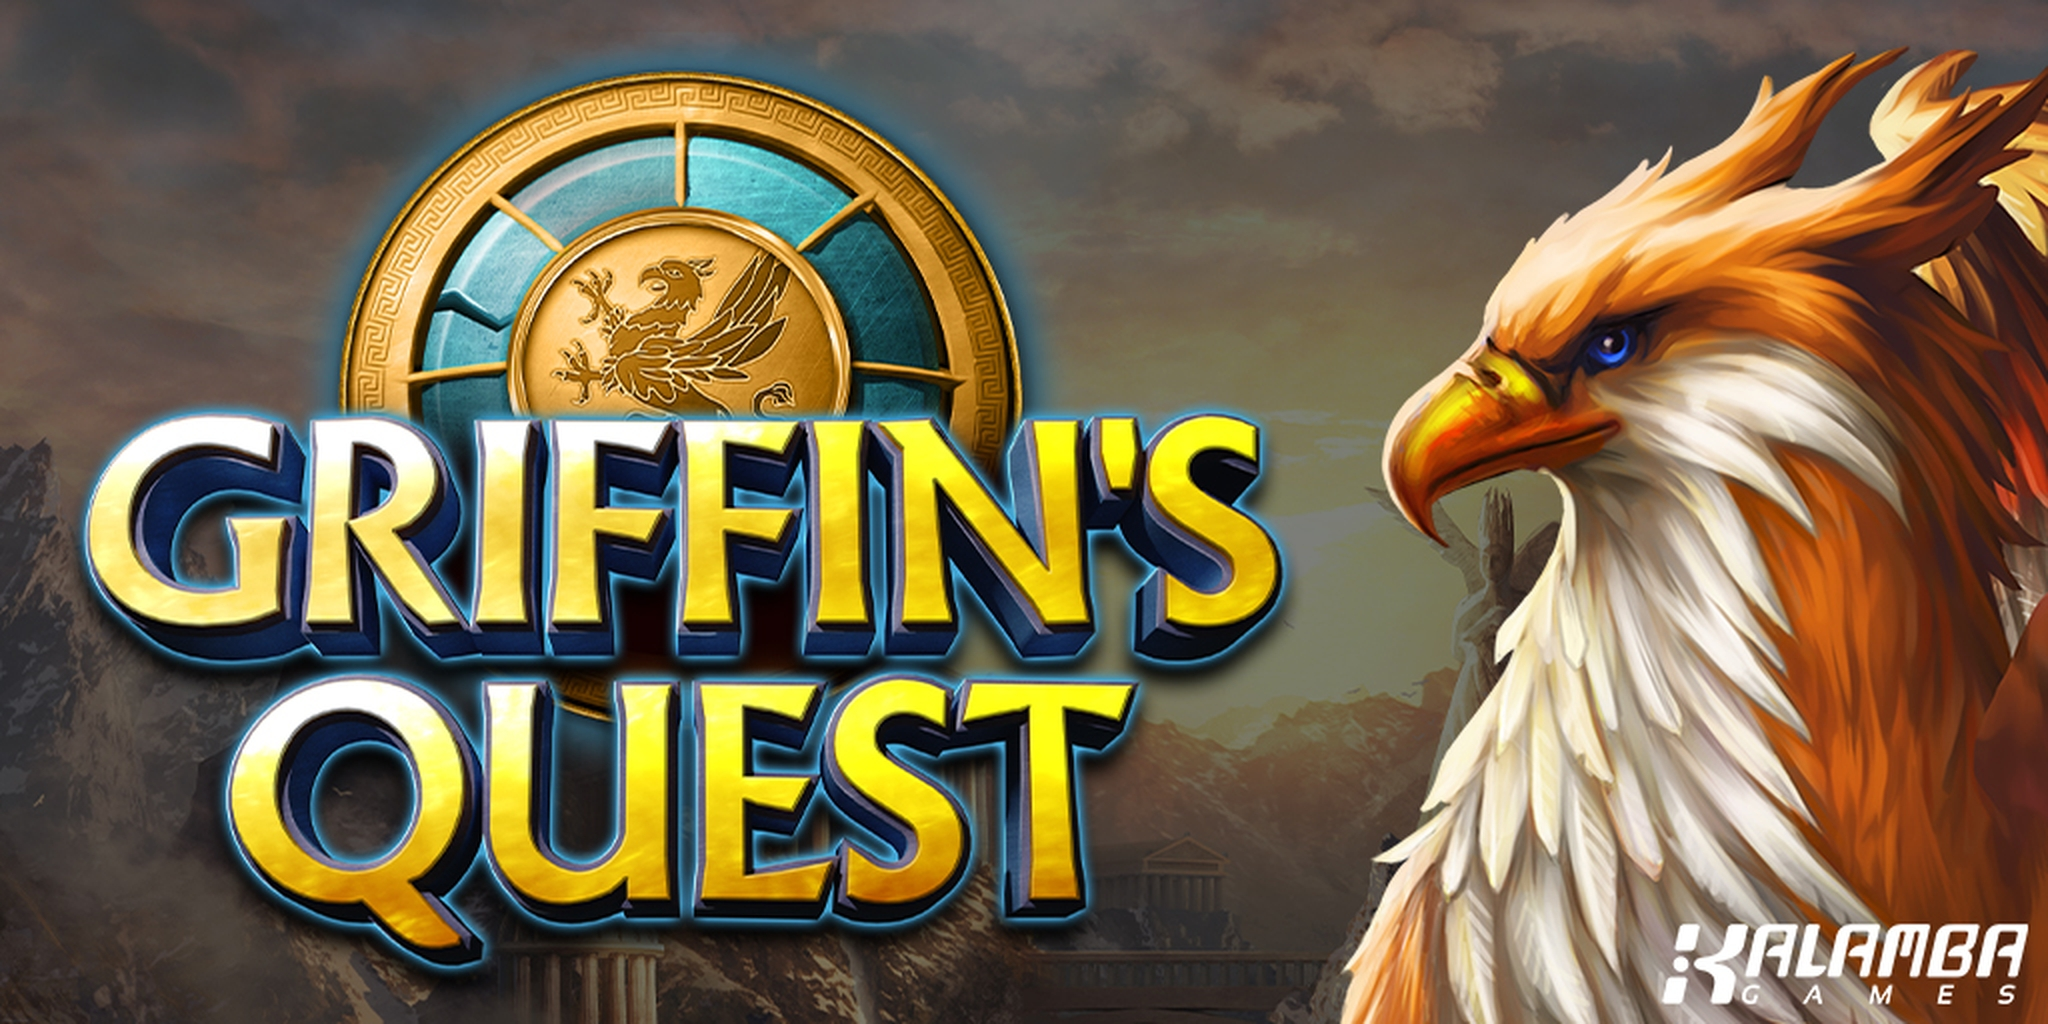 The Griffins Quest Online Slot Demo Game by Kalamba Games